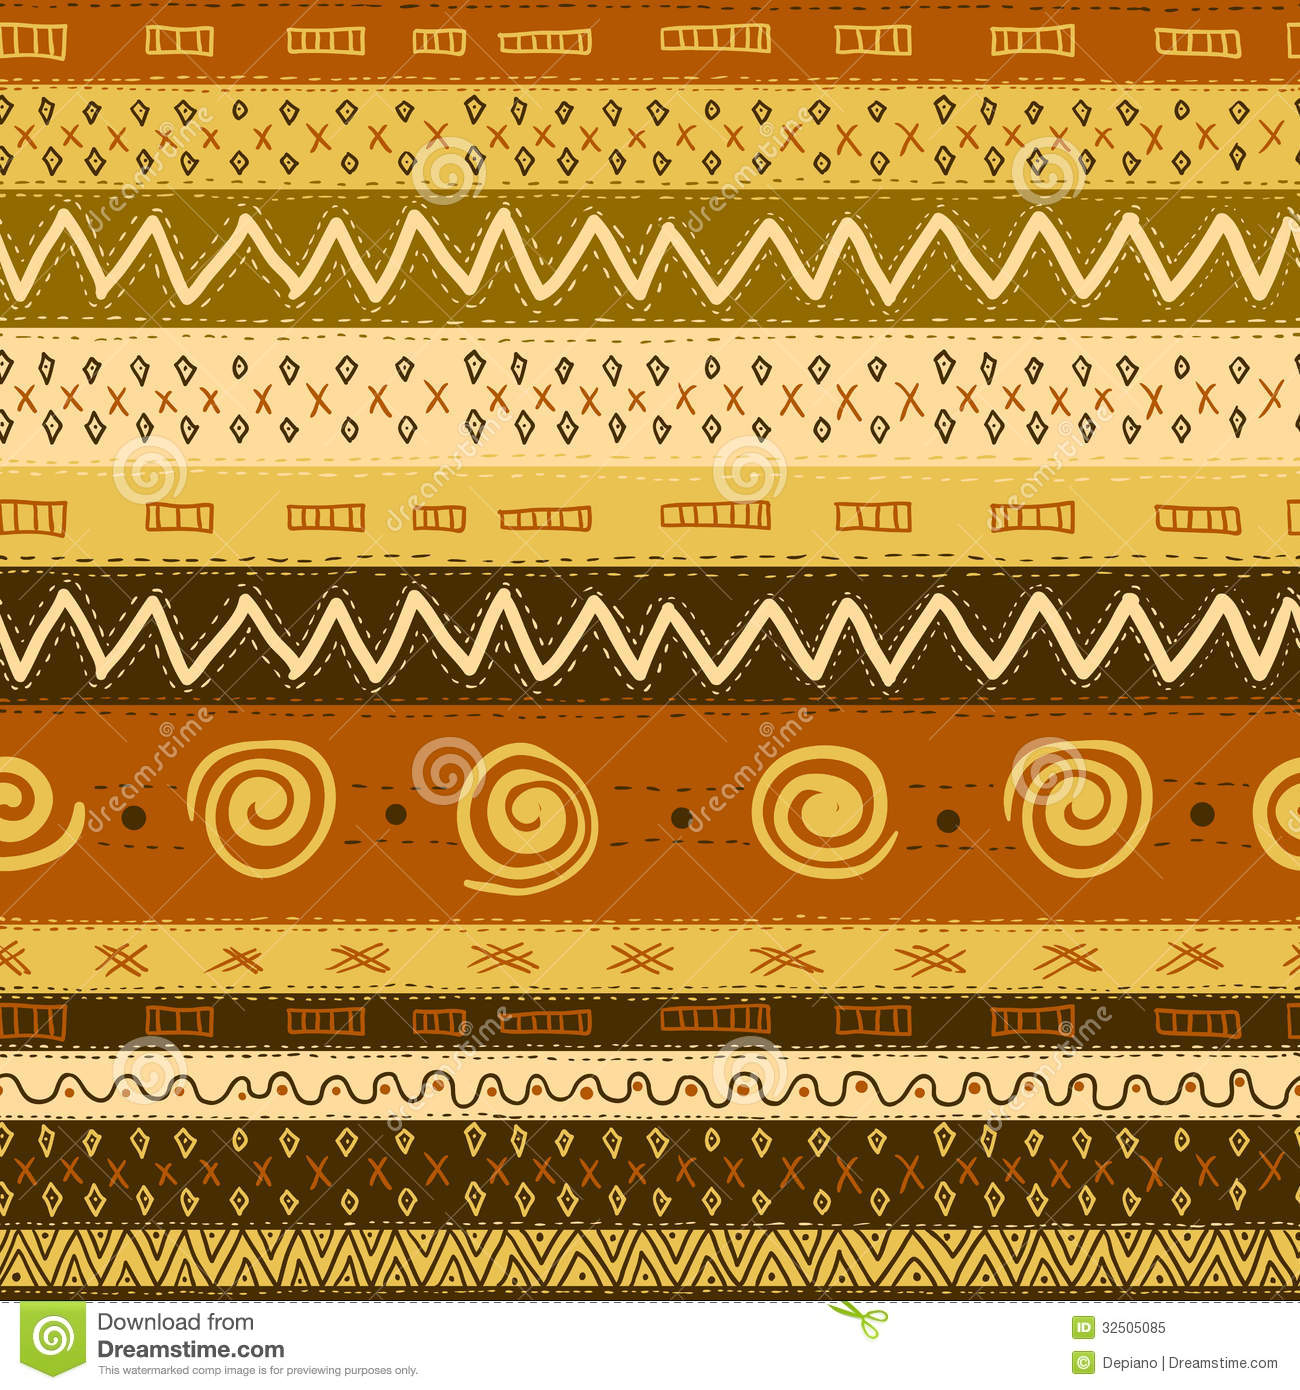 Ethnic African Seamless Background Royalty Free Stock